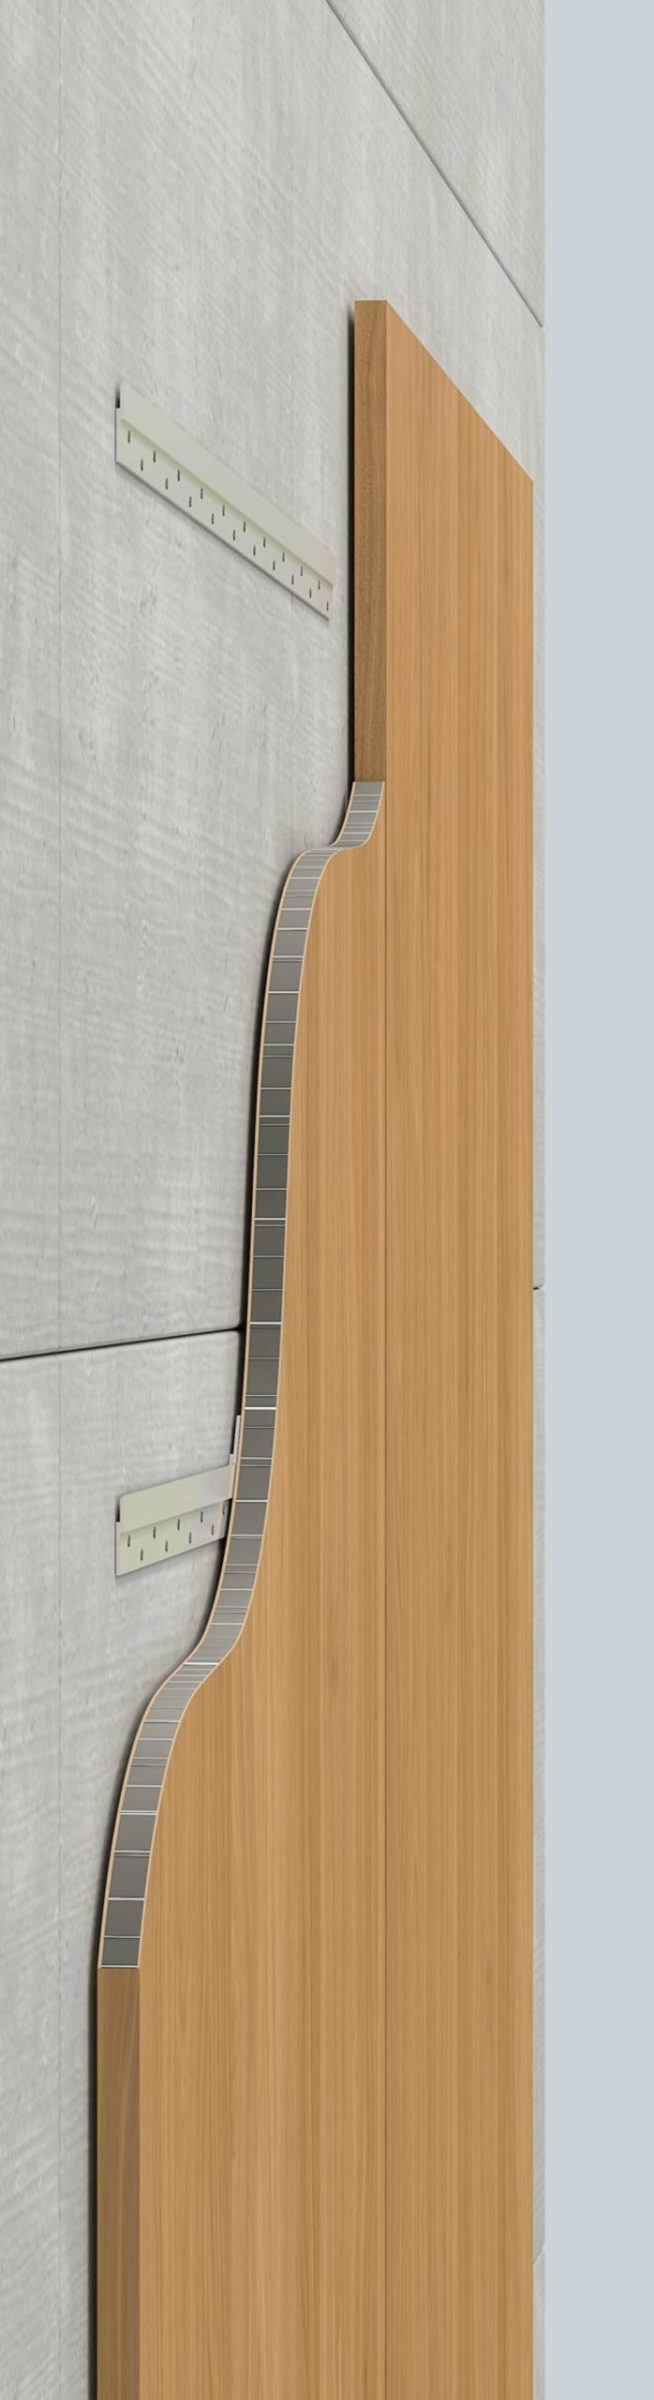 Profile view of a SoundPly acoustic wood panel